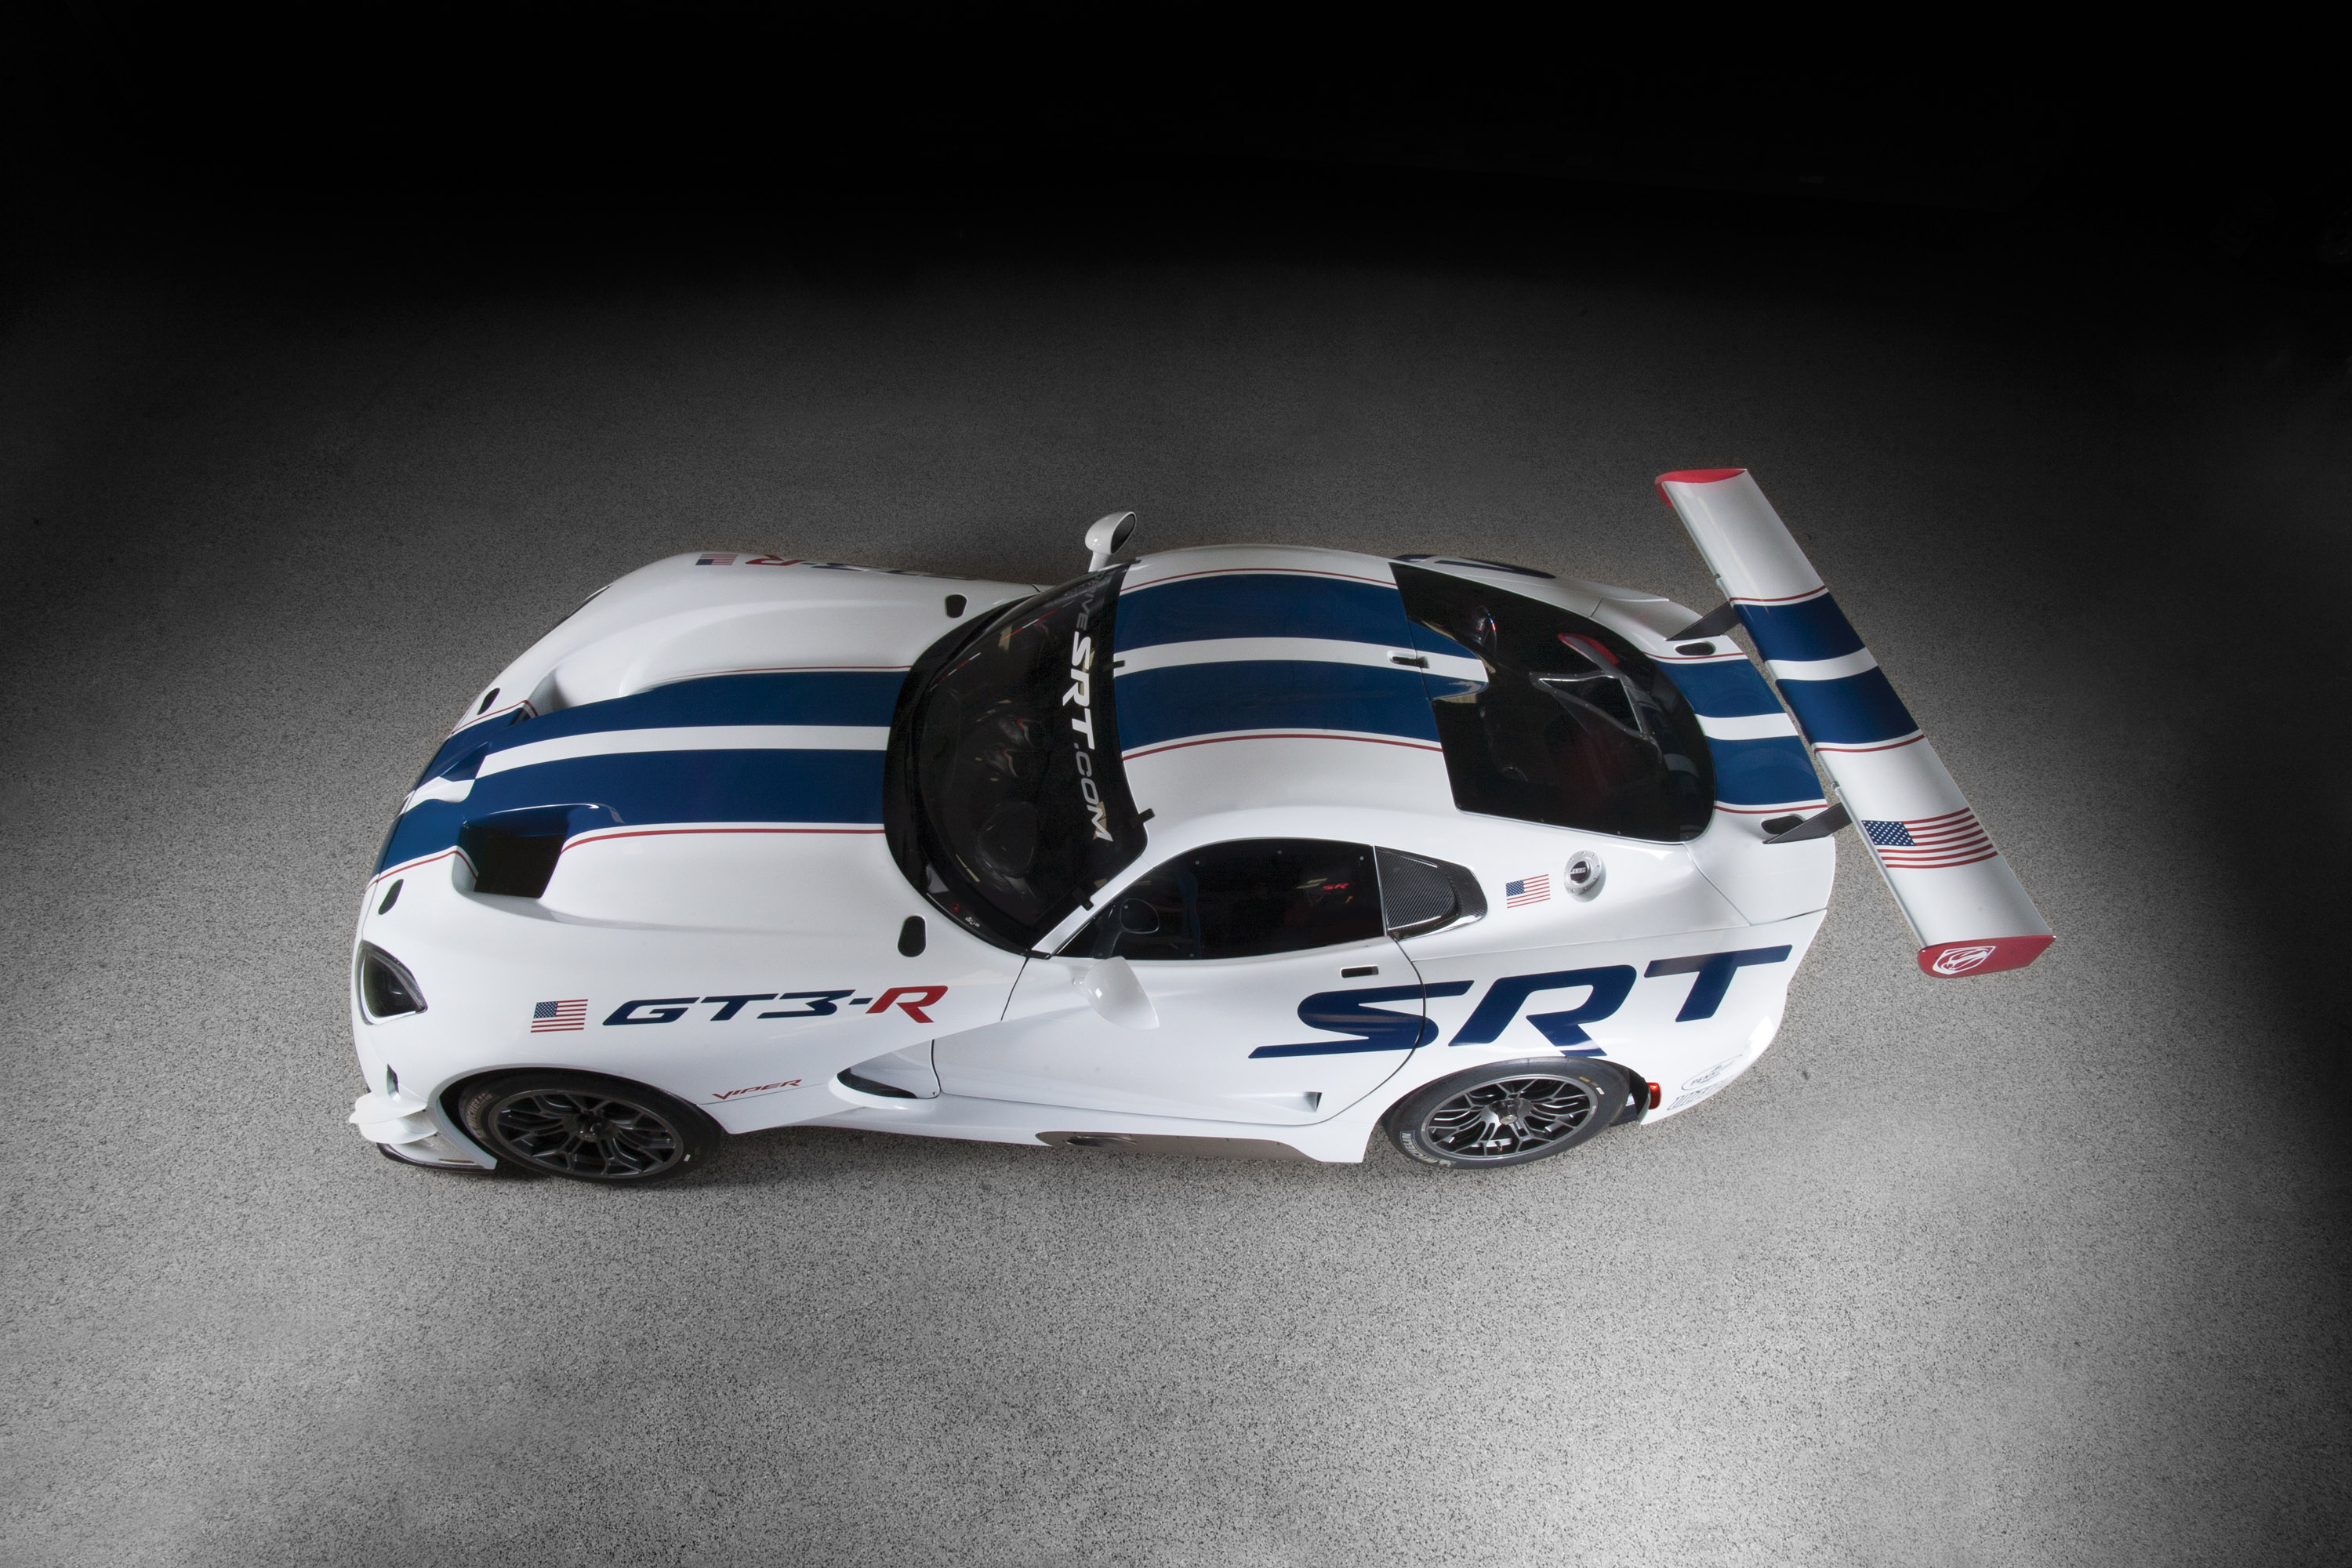 2014 Dodge SRT Viper GT3R Is Ready For Competition